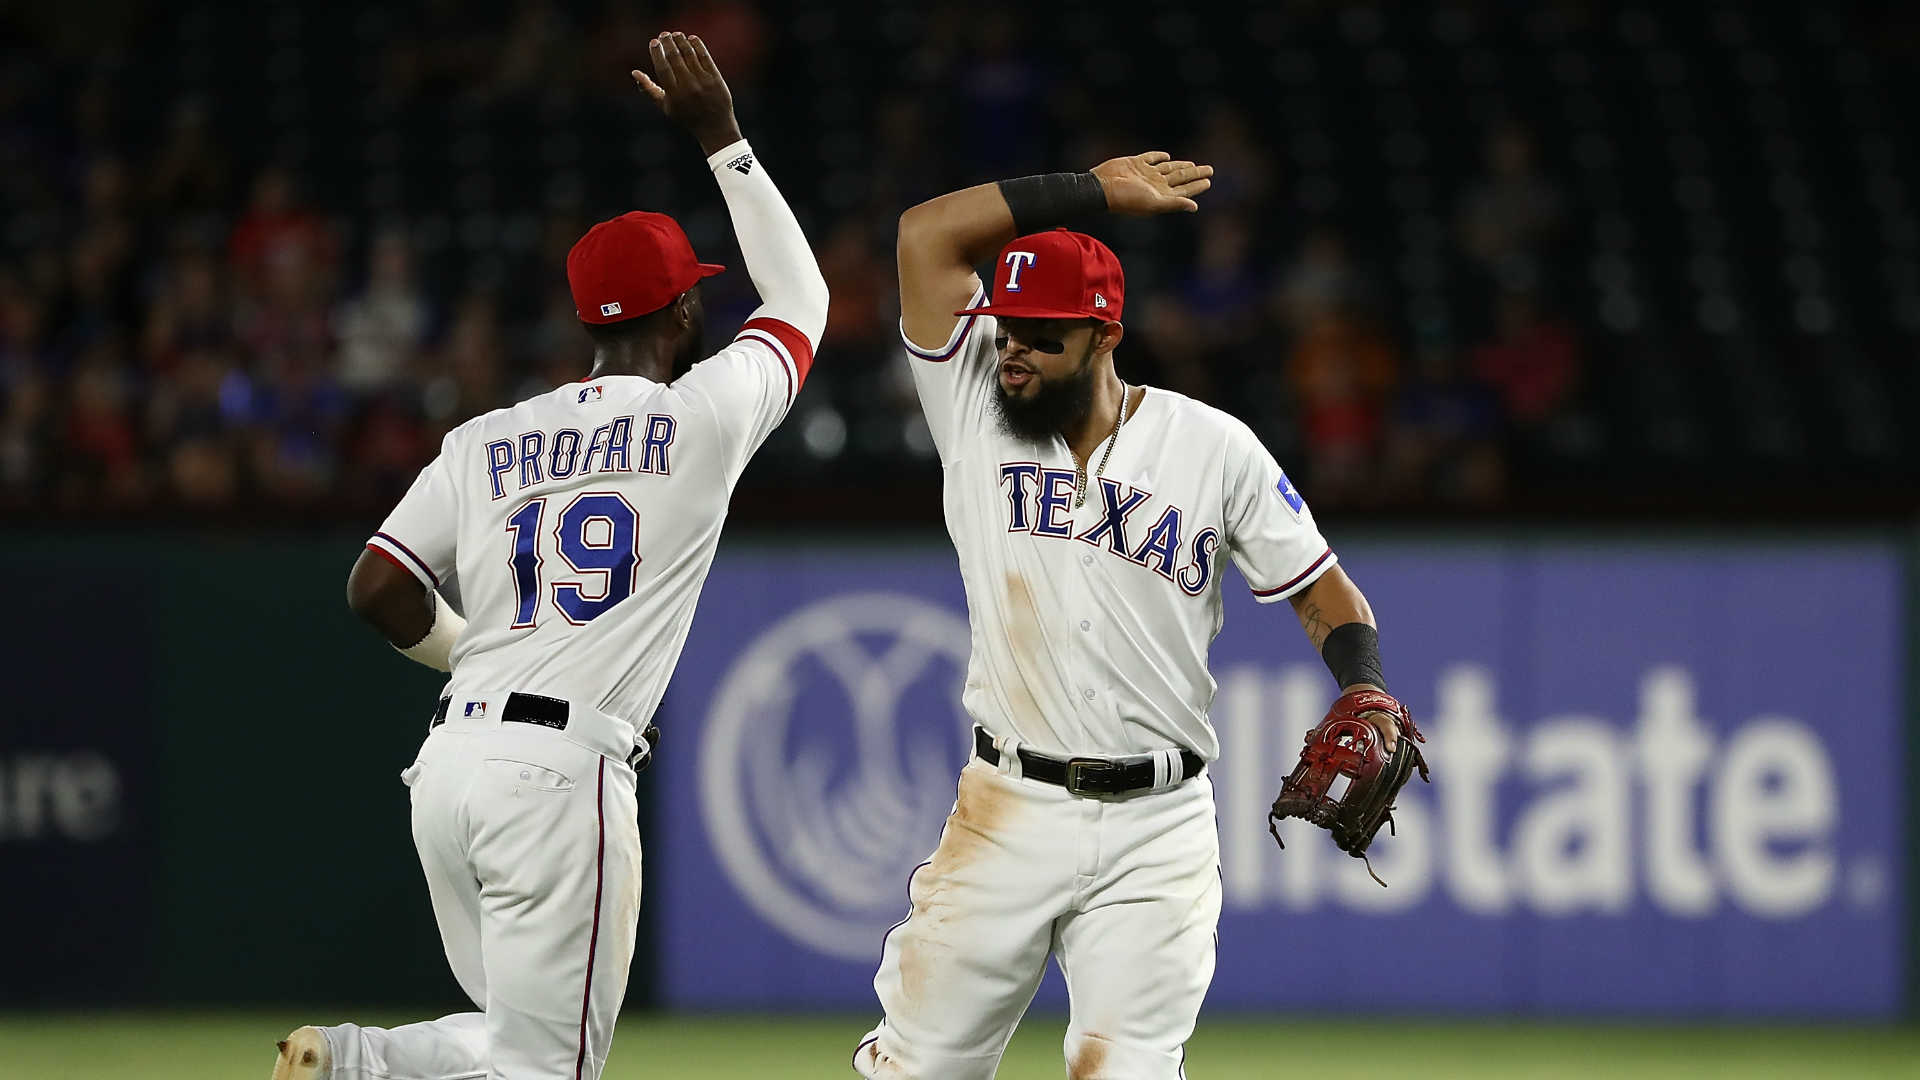 Texas Rangers pull off rare triple play not seen in 106 years